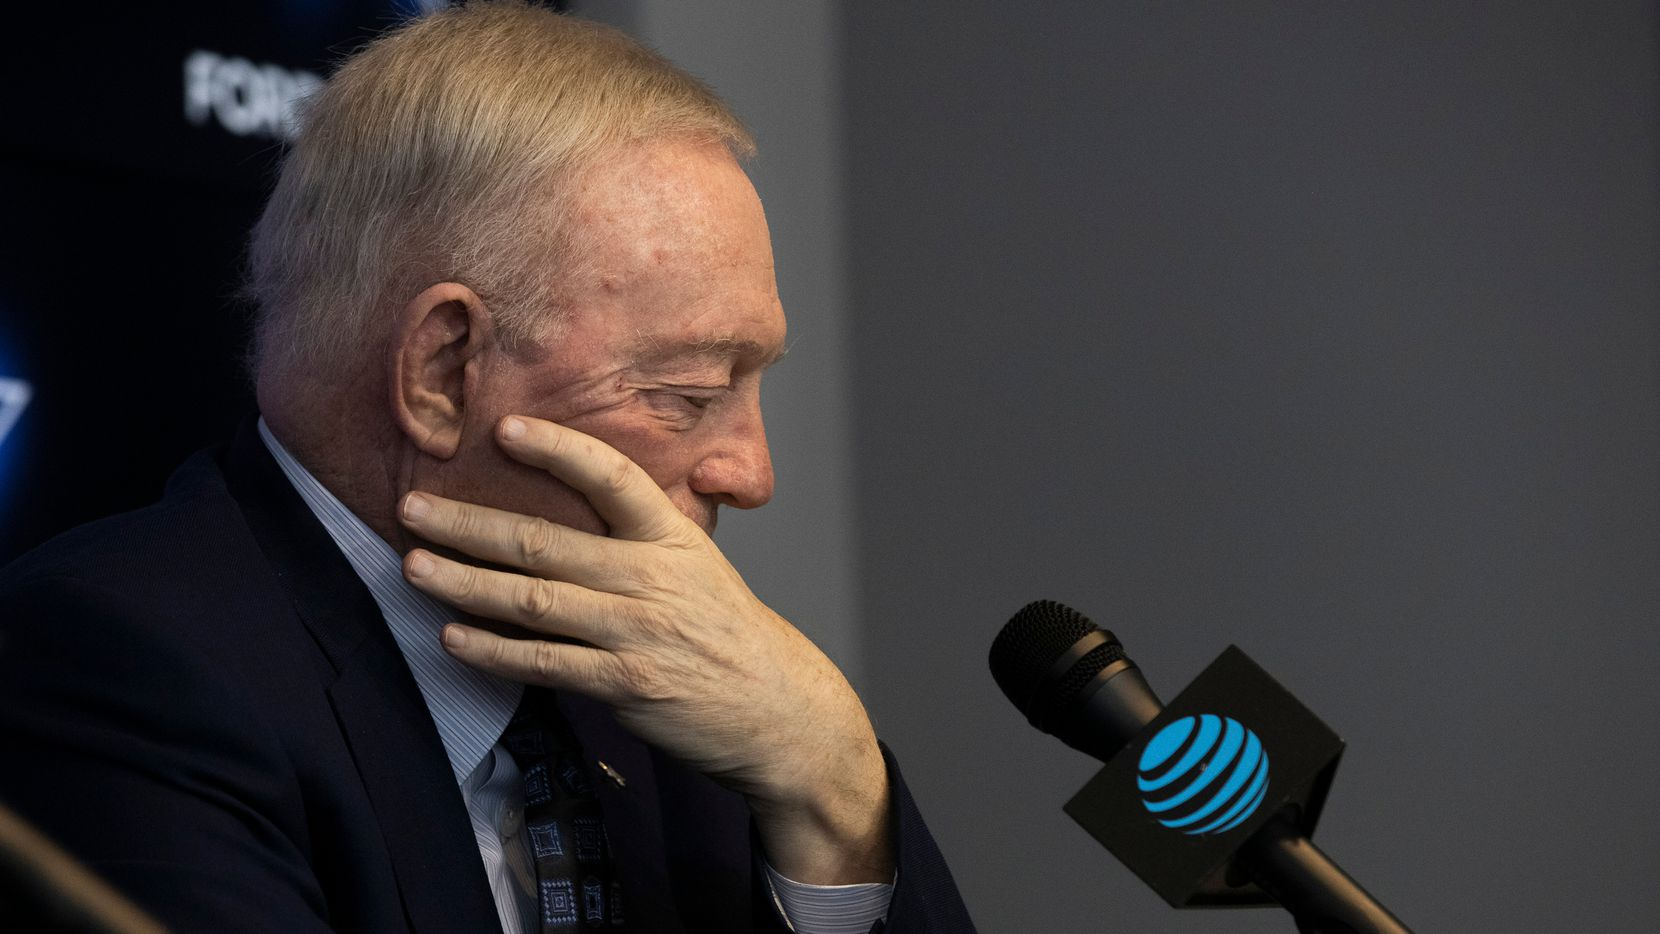 Dallas Cowboys Owner Jerry Jones listens to media questions during a pre-draft news conference at The Star in Frisco, Texas, on Tuesday, April 27, 2021.